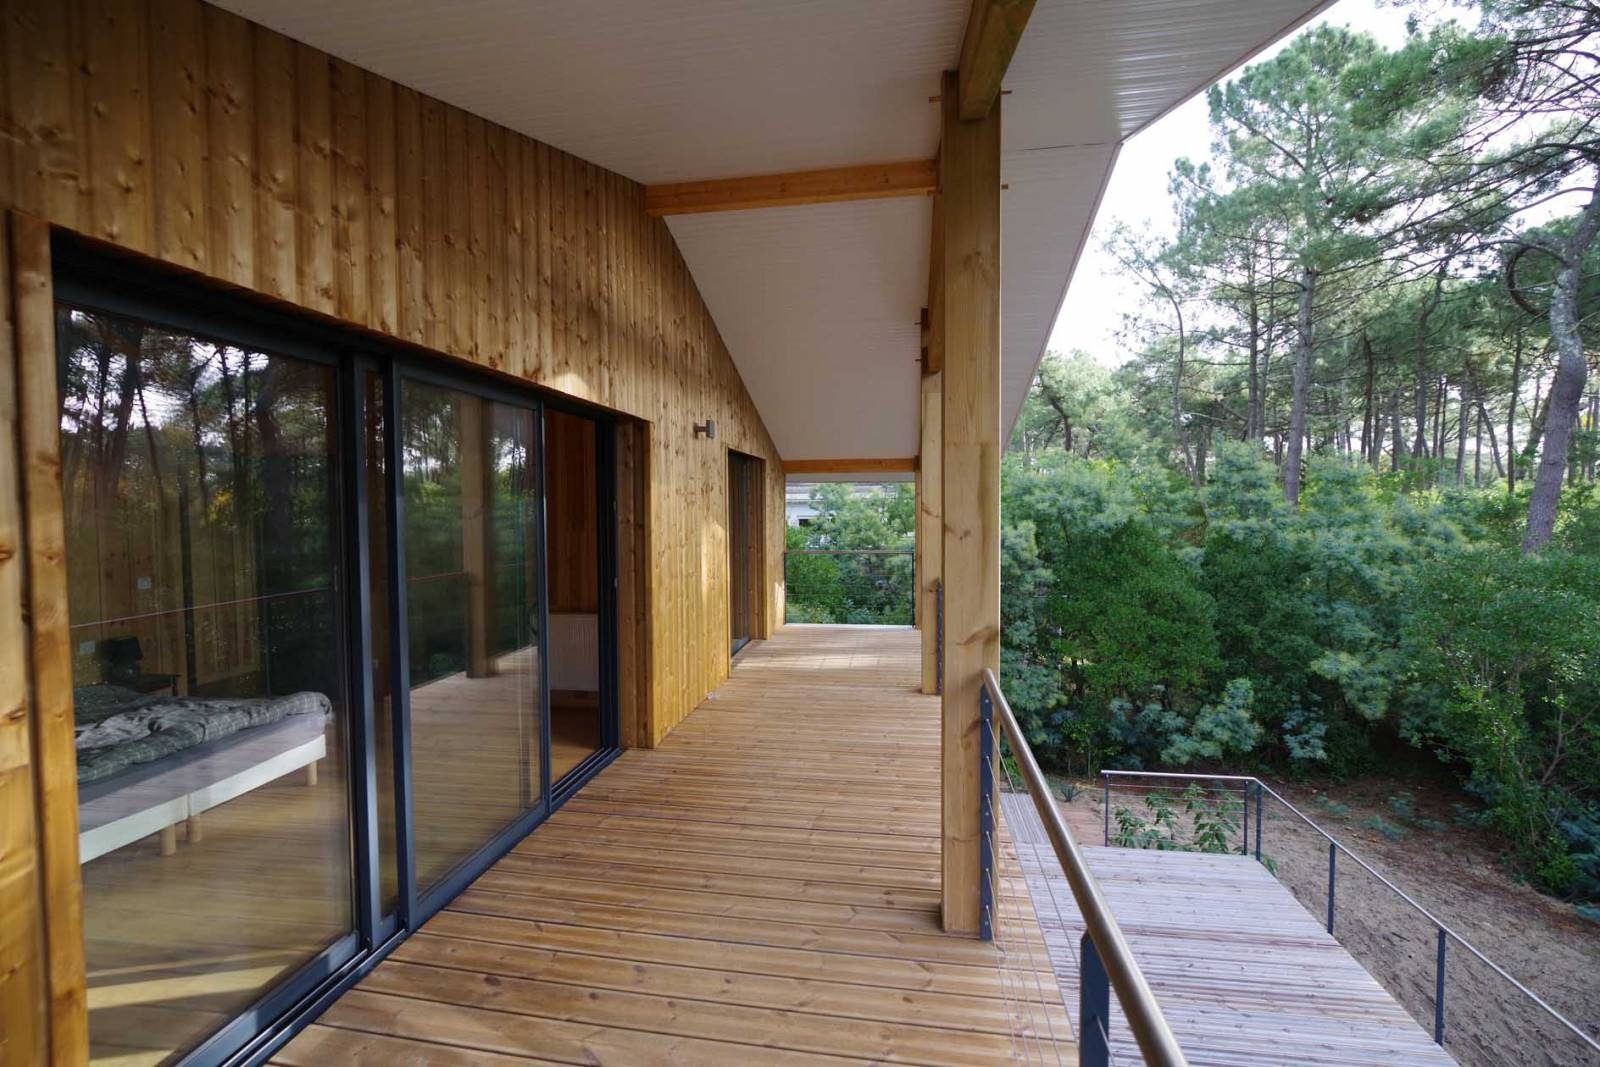 Gut gemocht Maison Bois Cap Ferret - Architecte Bordeaux - Denis Cartier  XV85